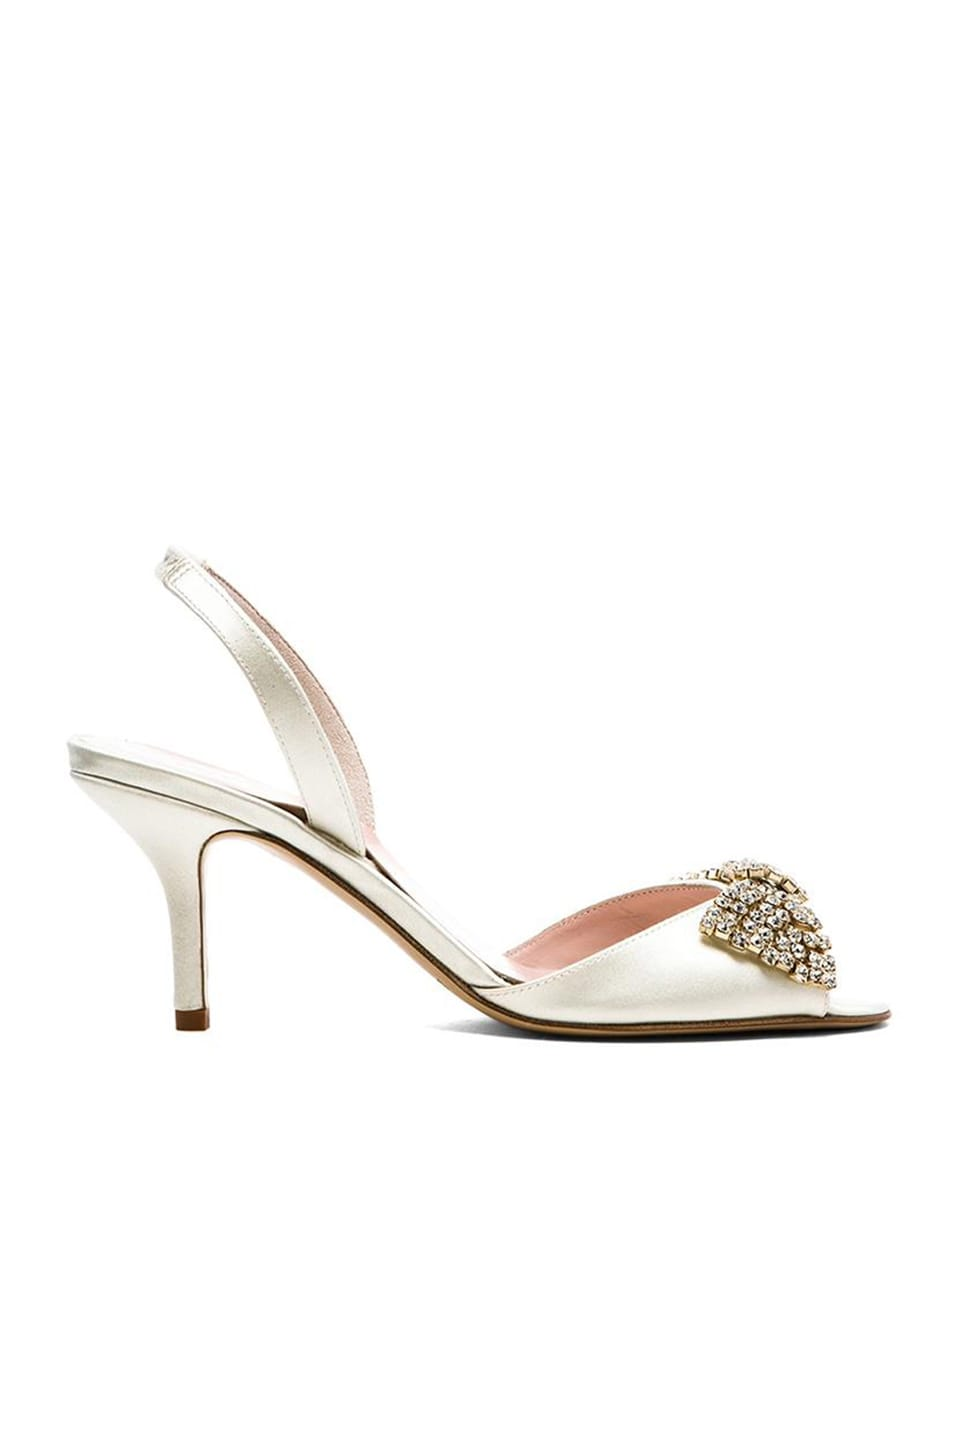 kate spade new york Miva Heel in Ivory Satin